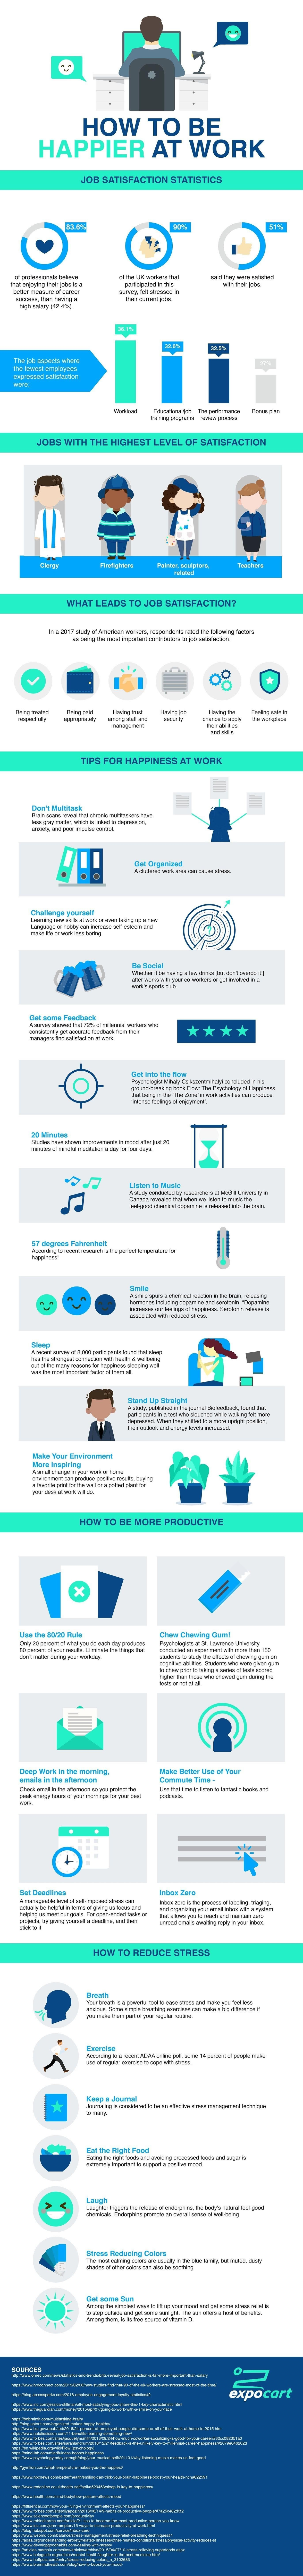 How to Work Good #infographic